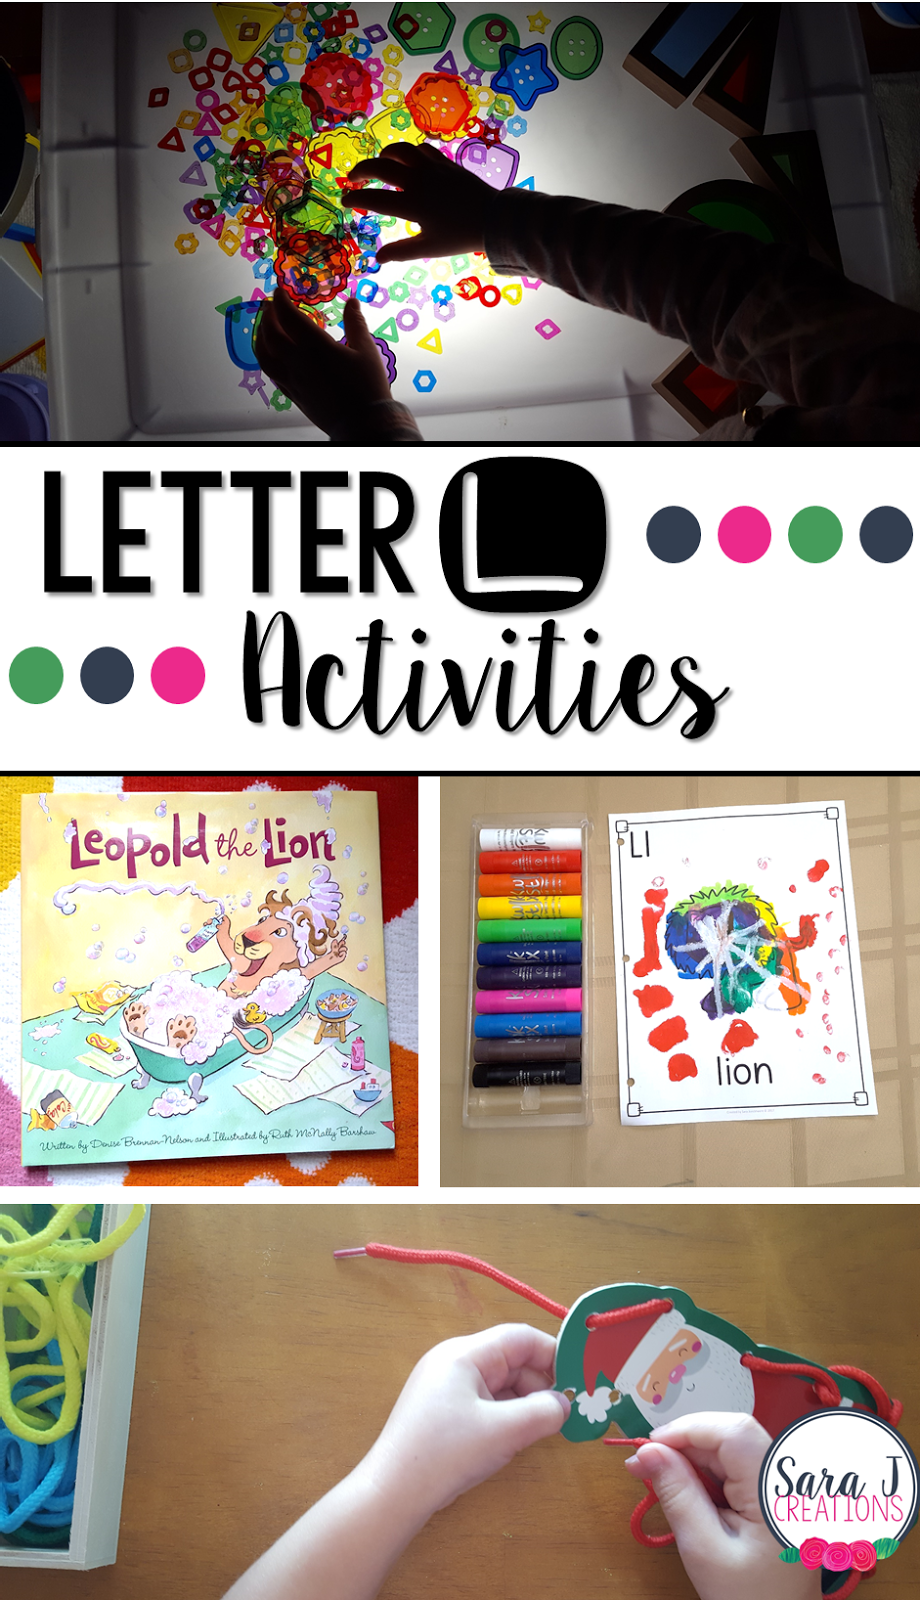 Letter L Activities that would be perfect for preschool or kindergarten. Art, fine motor, literacy and alphabet practice all rolled into Letter L fun.